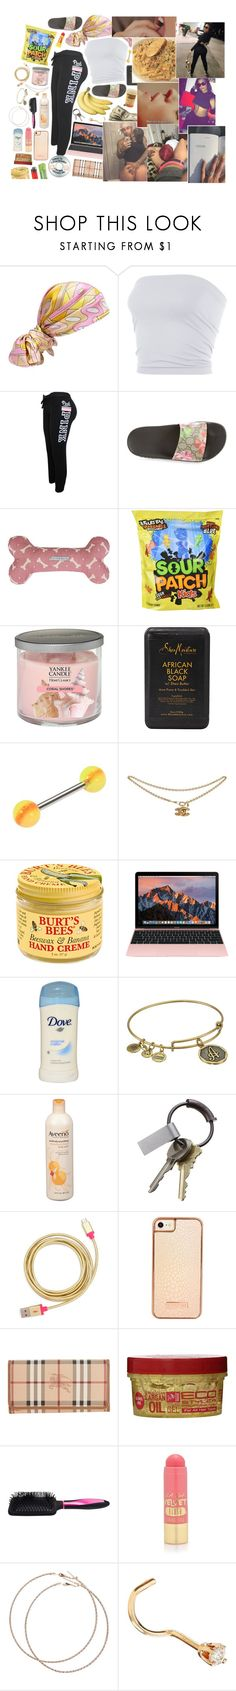 """""""kaidyn"""" by cle0trappa ❤ liked on Polyvore featuring Emilio Pucci, Victoria's Secret PINK, Gucci, Mutts & Hounds, Yankee Candle, SheaMoisture, LIST, Burt's Bees, Carmex and Alex and Ani"""